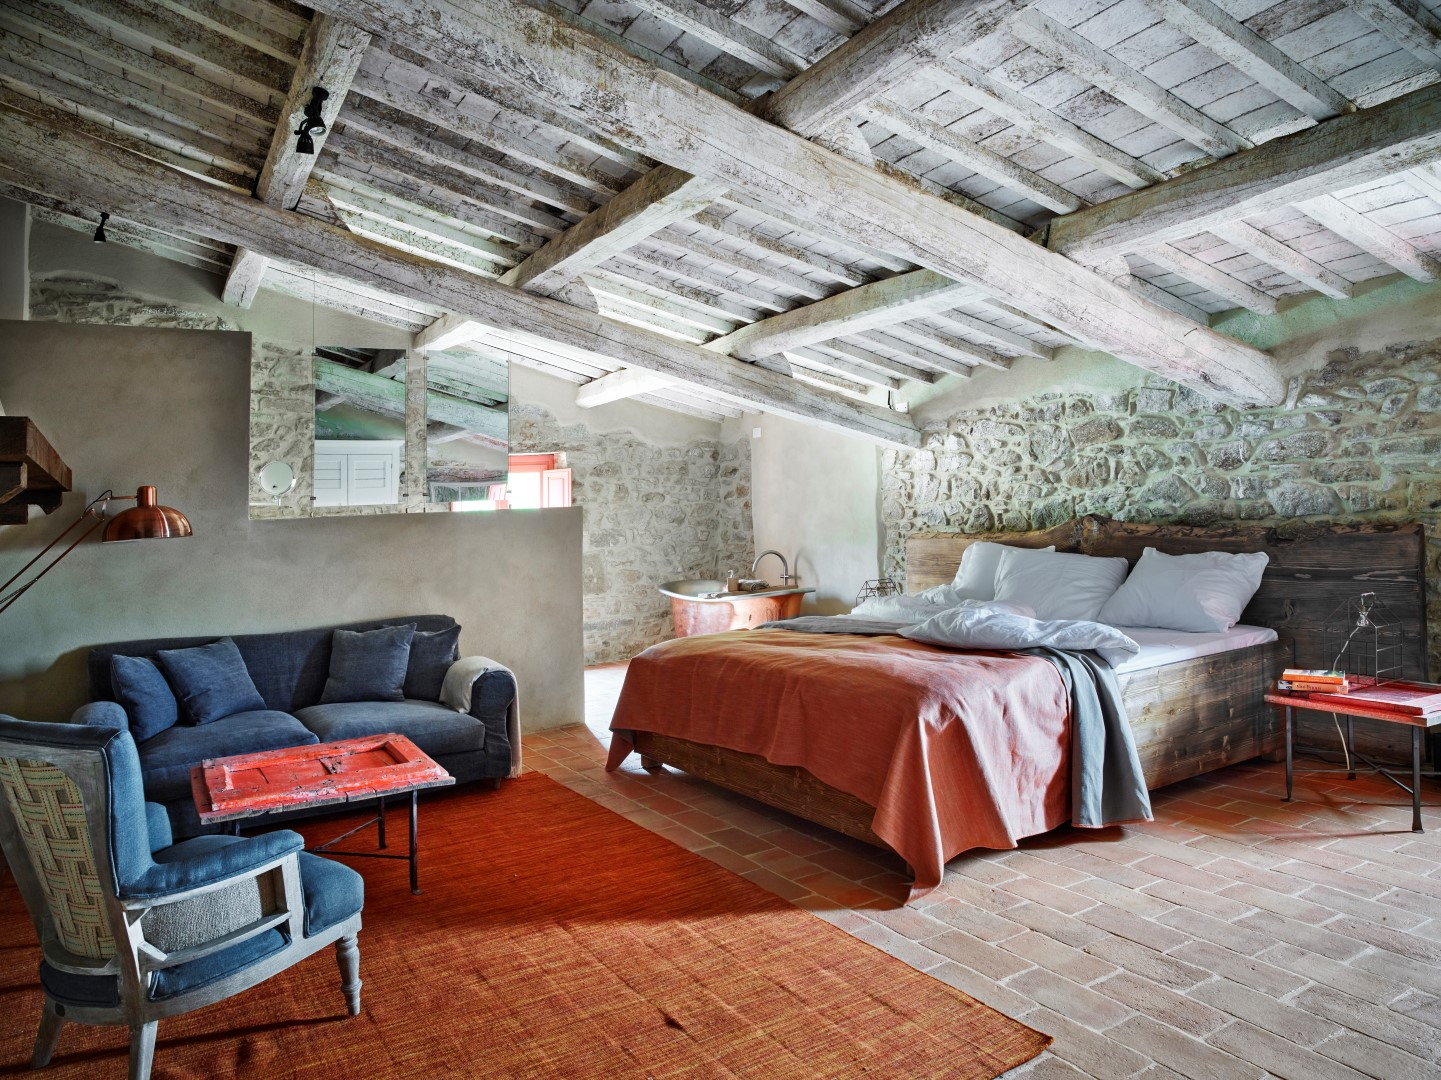 Luxury Italian Villa Design At Podere Posabile By Special Umbria